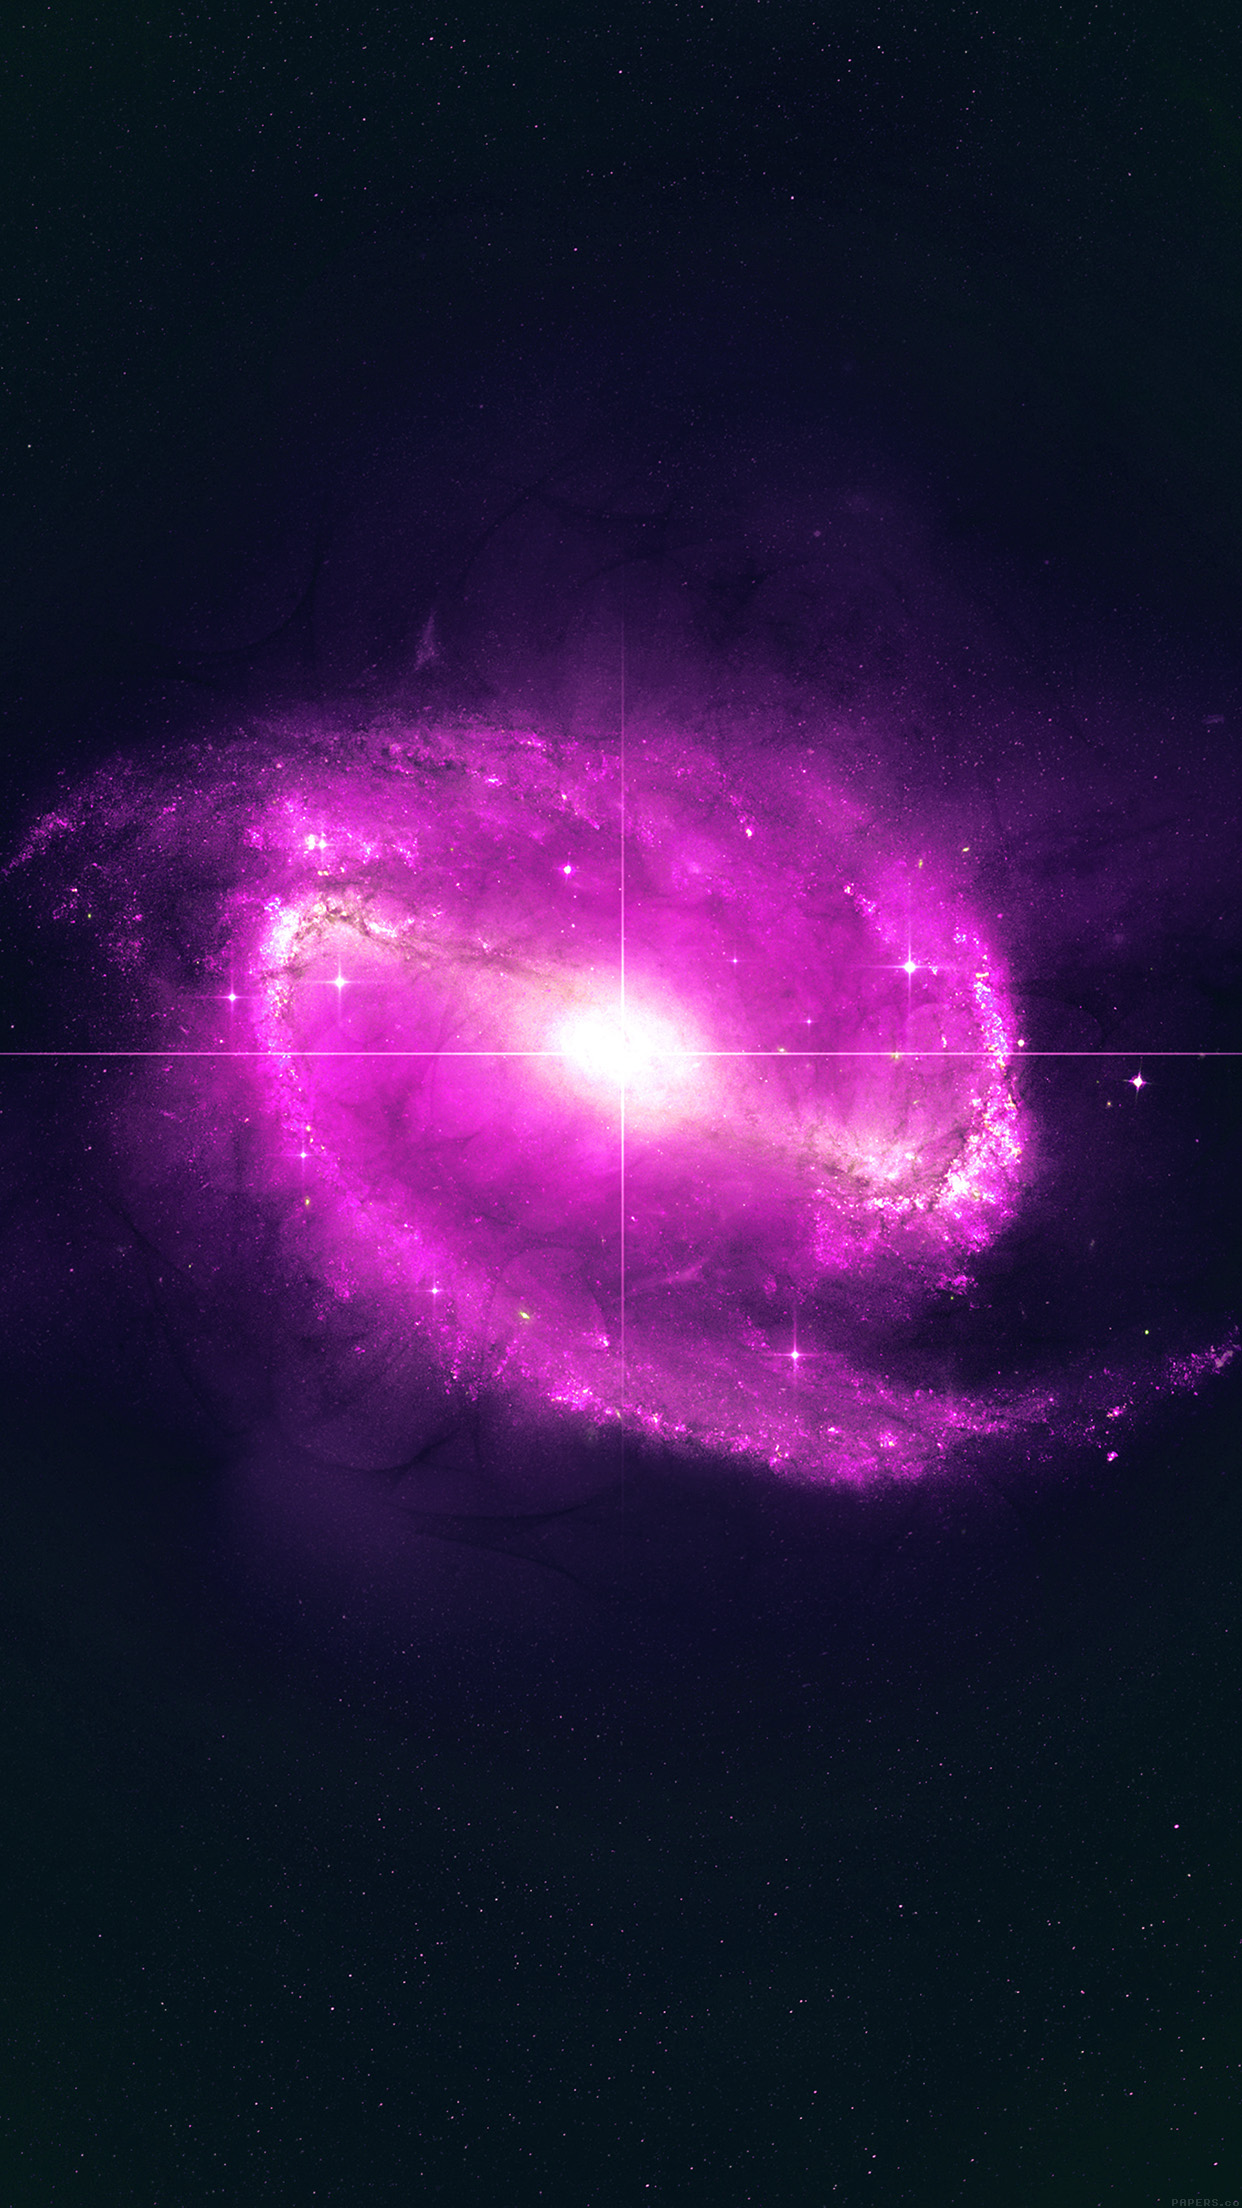 space pink bingbang explosion star nature dark android wallpaper